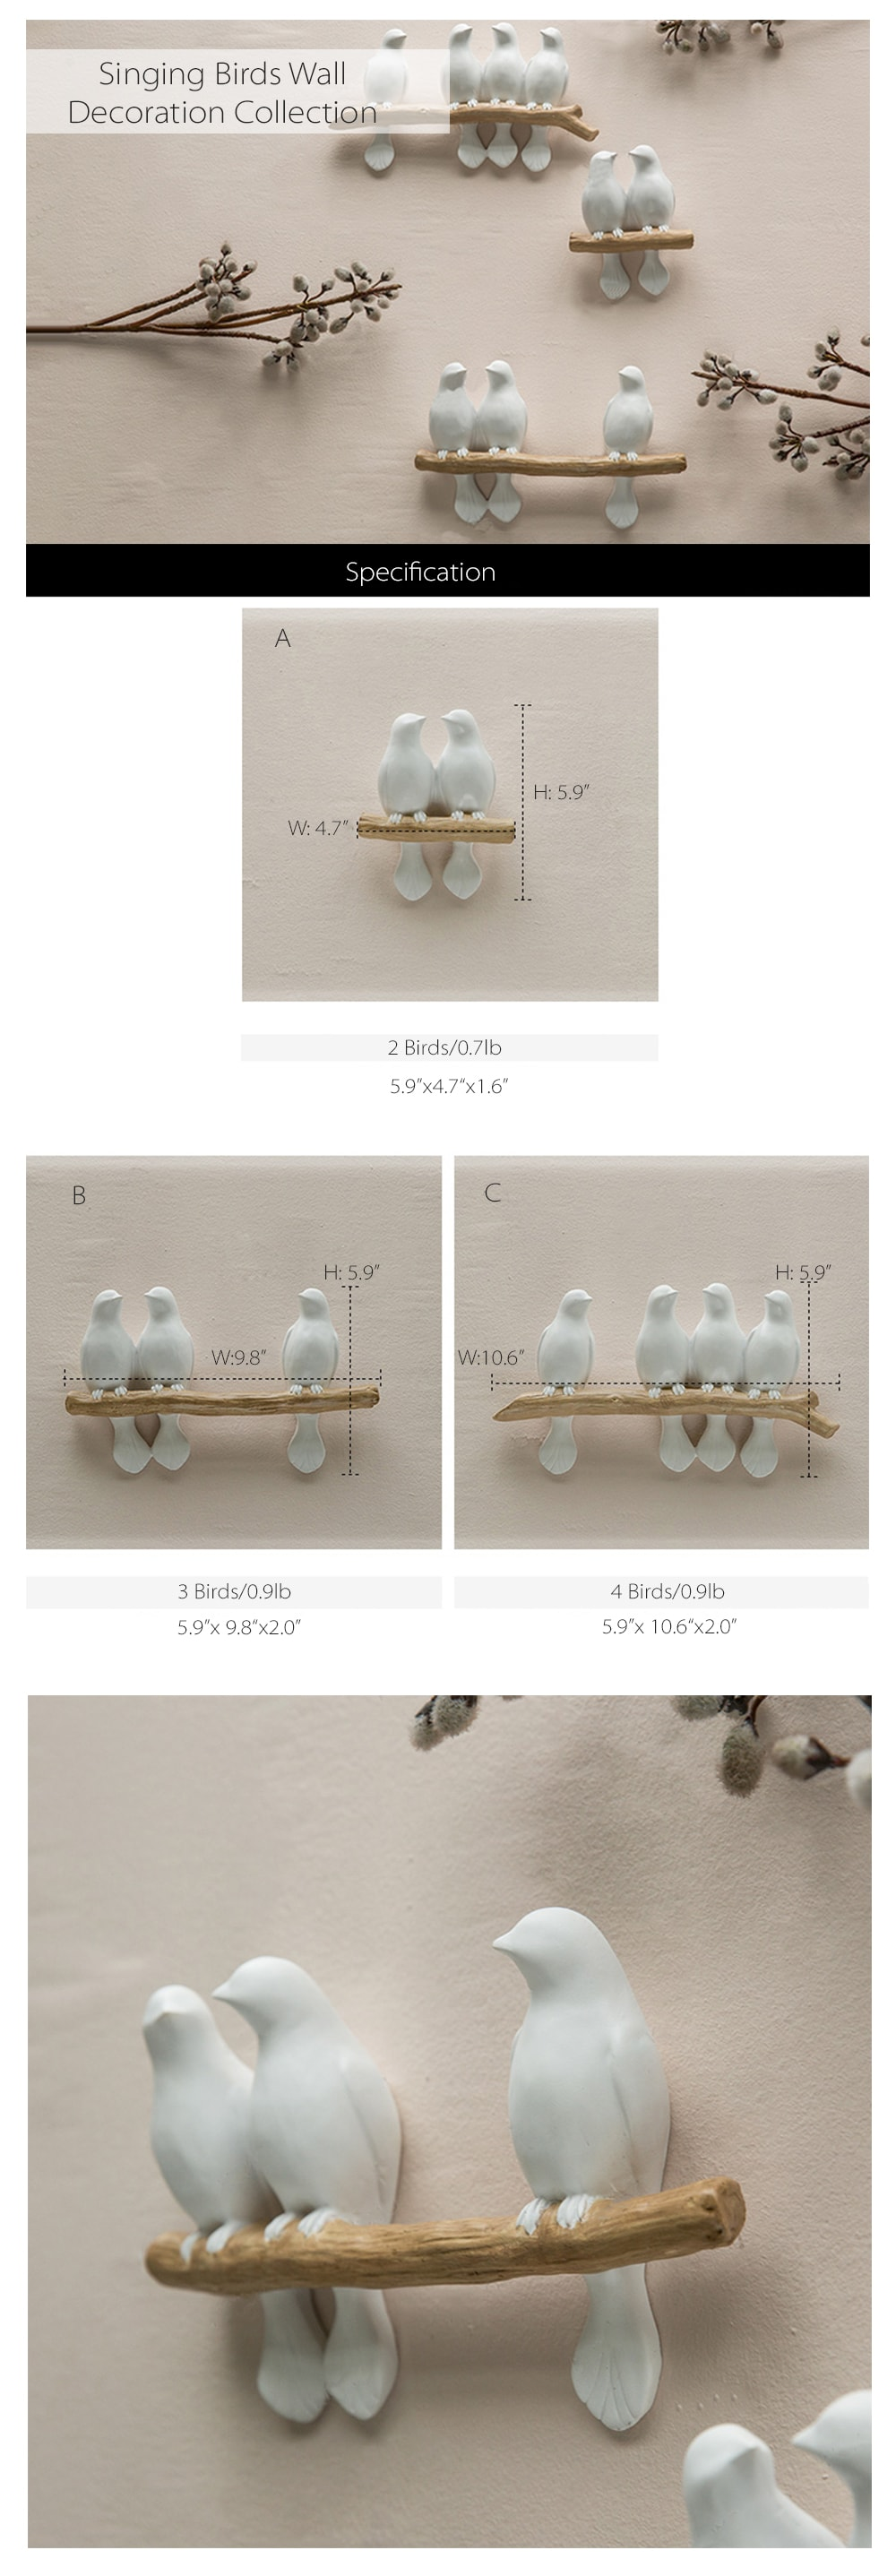 Singing Birds Wall Decoration Lovely Birds At Your Home